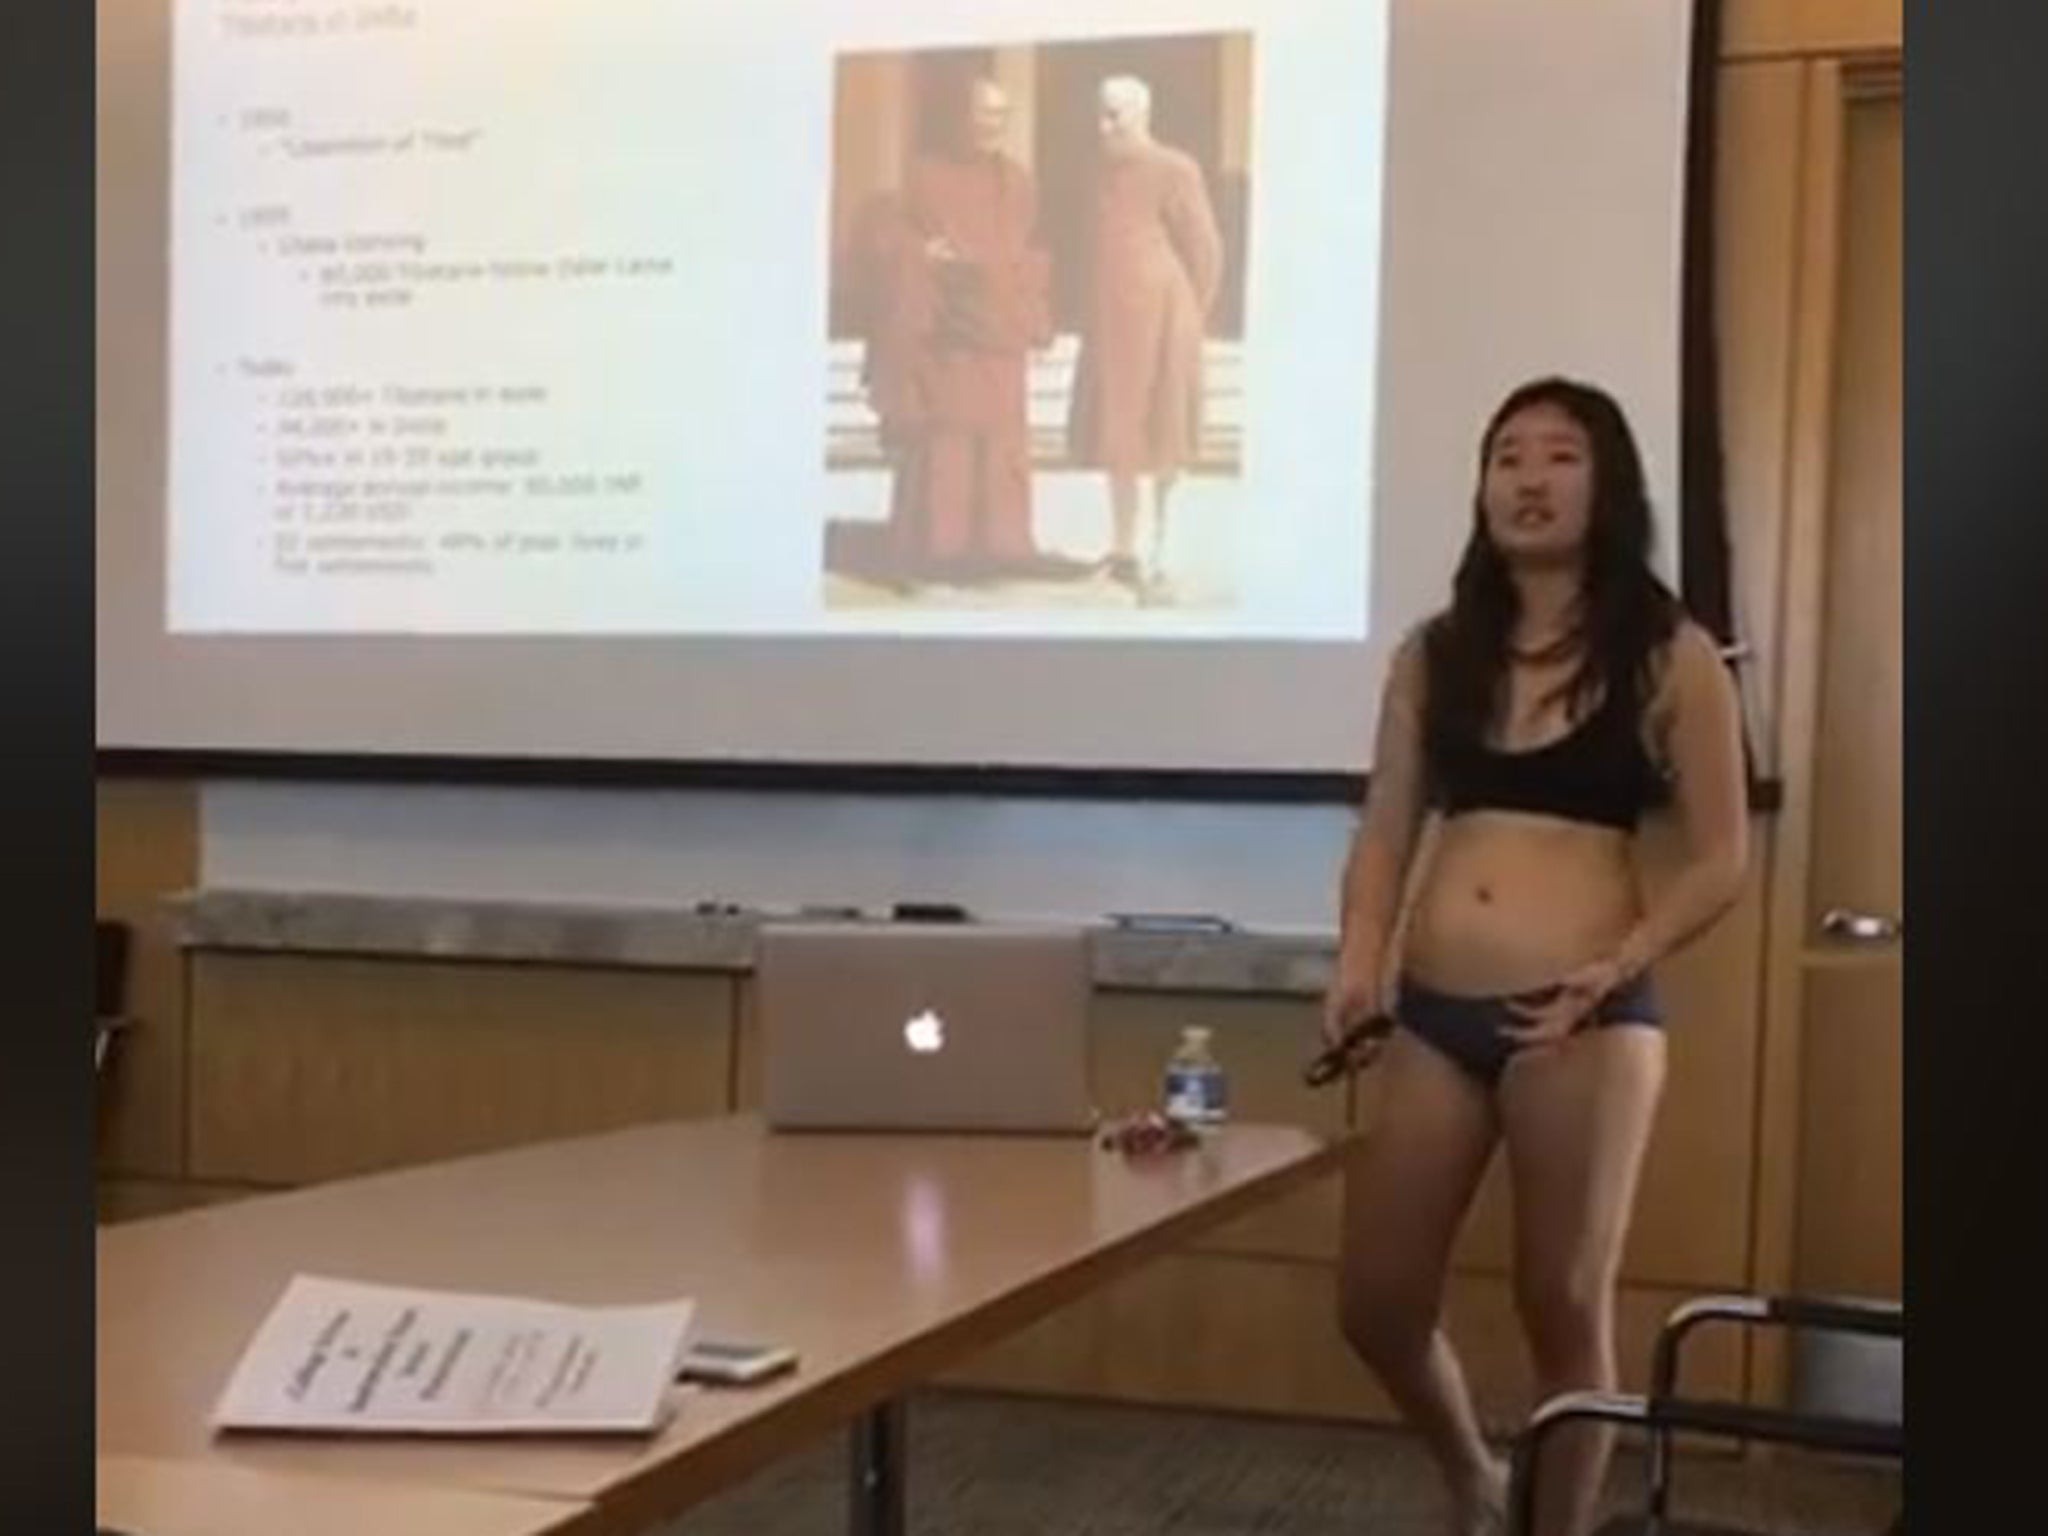 Student presents thesis in underwear after professor says her 'shorts are too short'